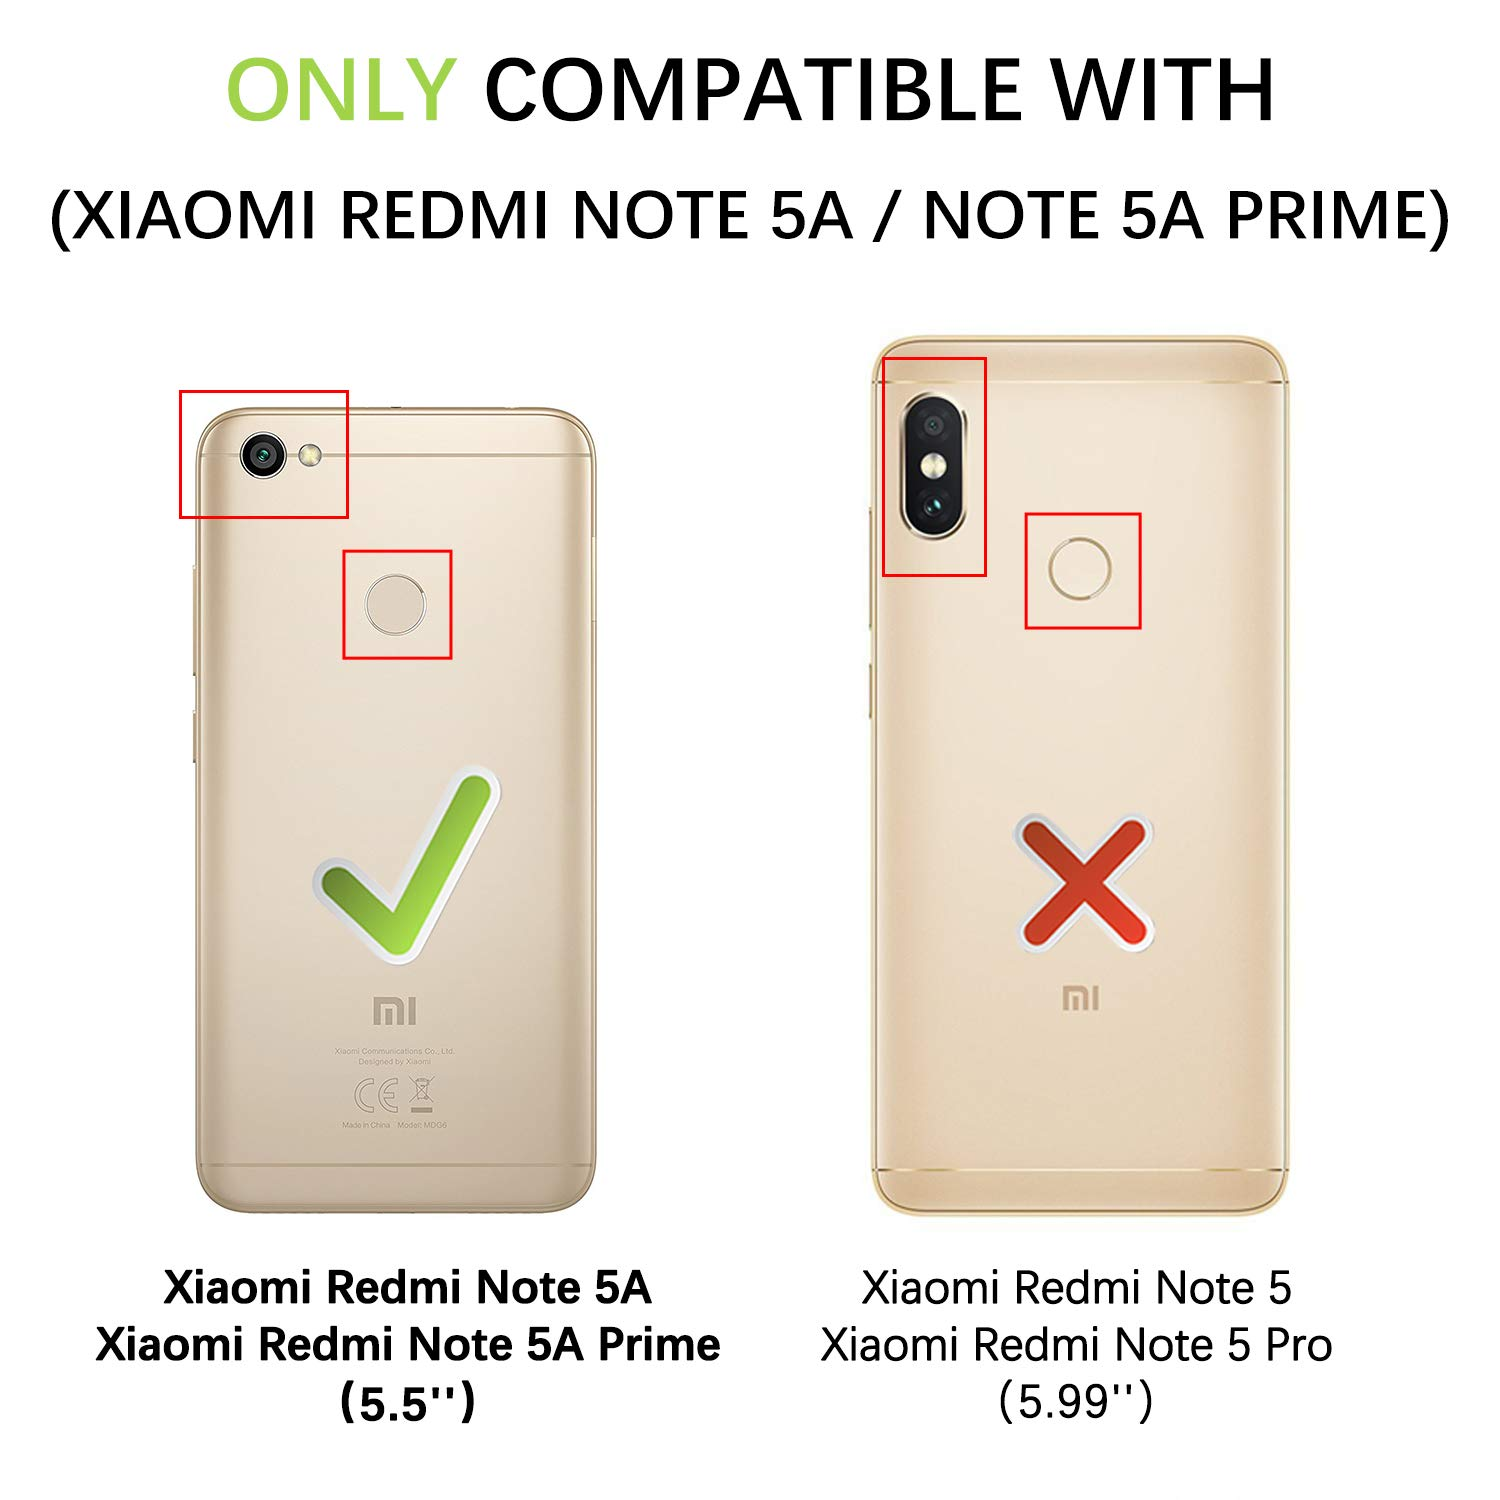 Hoomil Armor Shockproof Phone Case For Xiaomi Redmi Note 5a Cover Xiomi With Kickstand Black Electronics